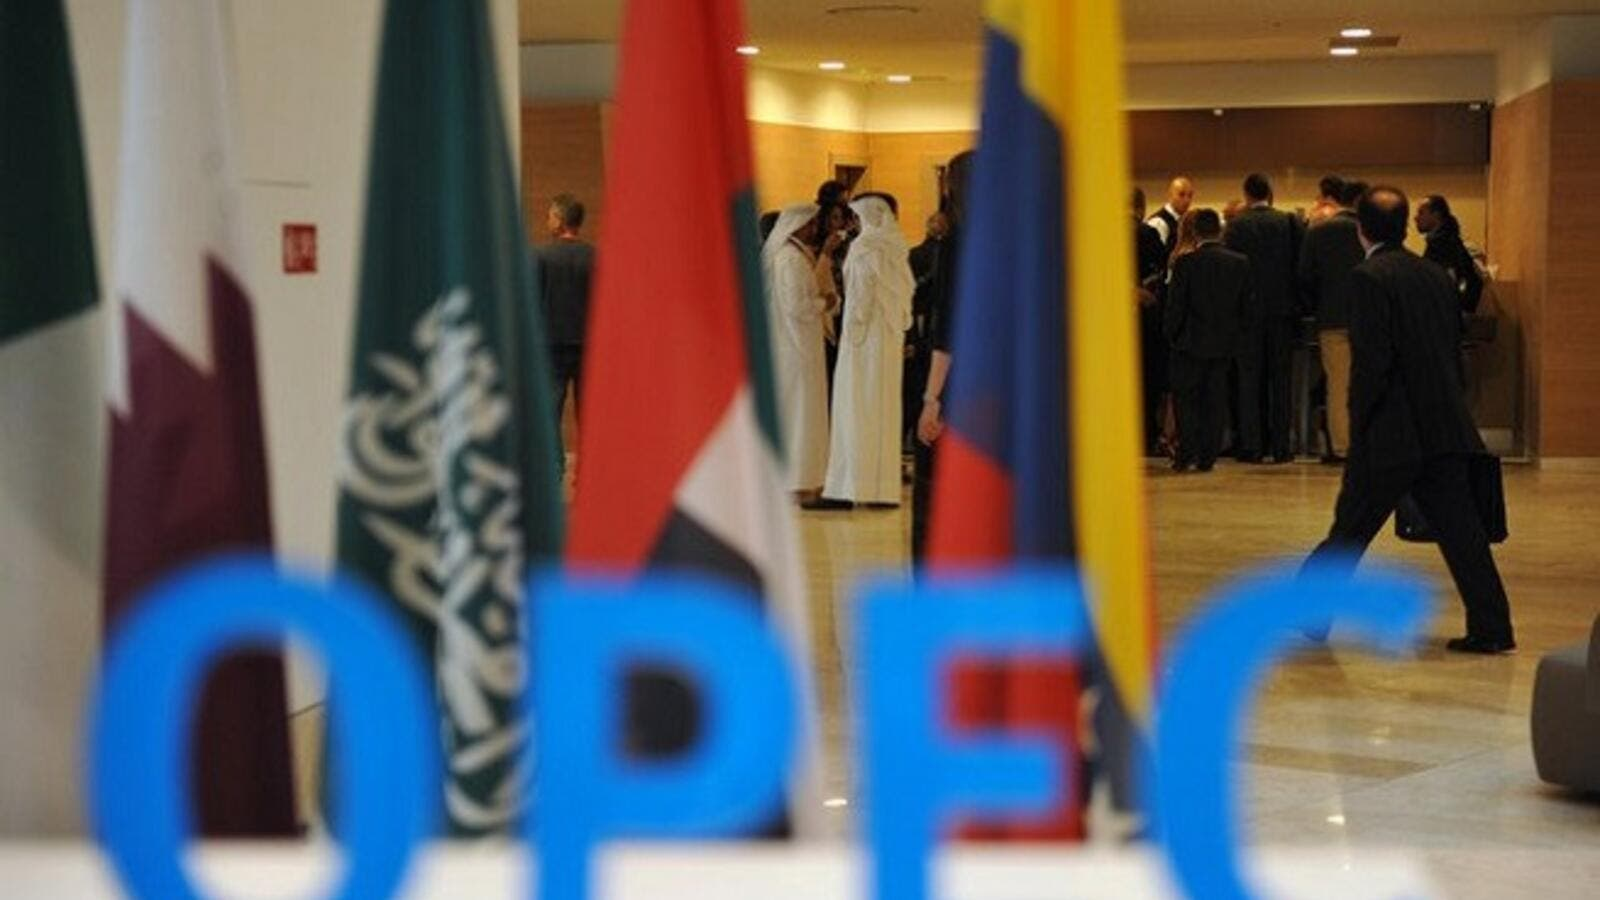 The Opec Fund for International Development (OFID) is financing energy projects worth $1.6 billion in Arab countries. (Shutterstock)